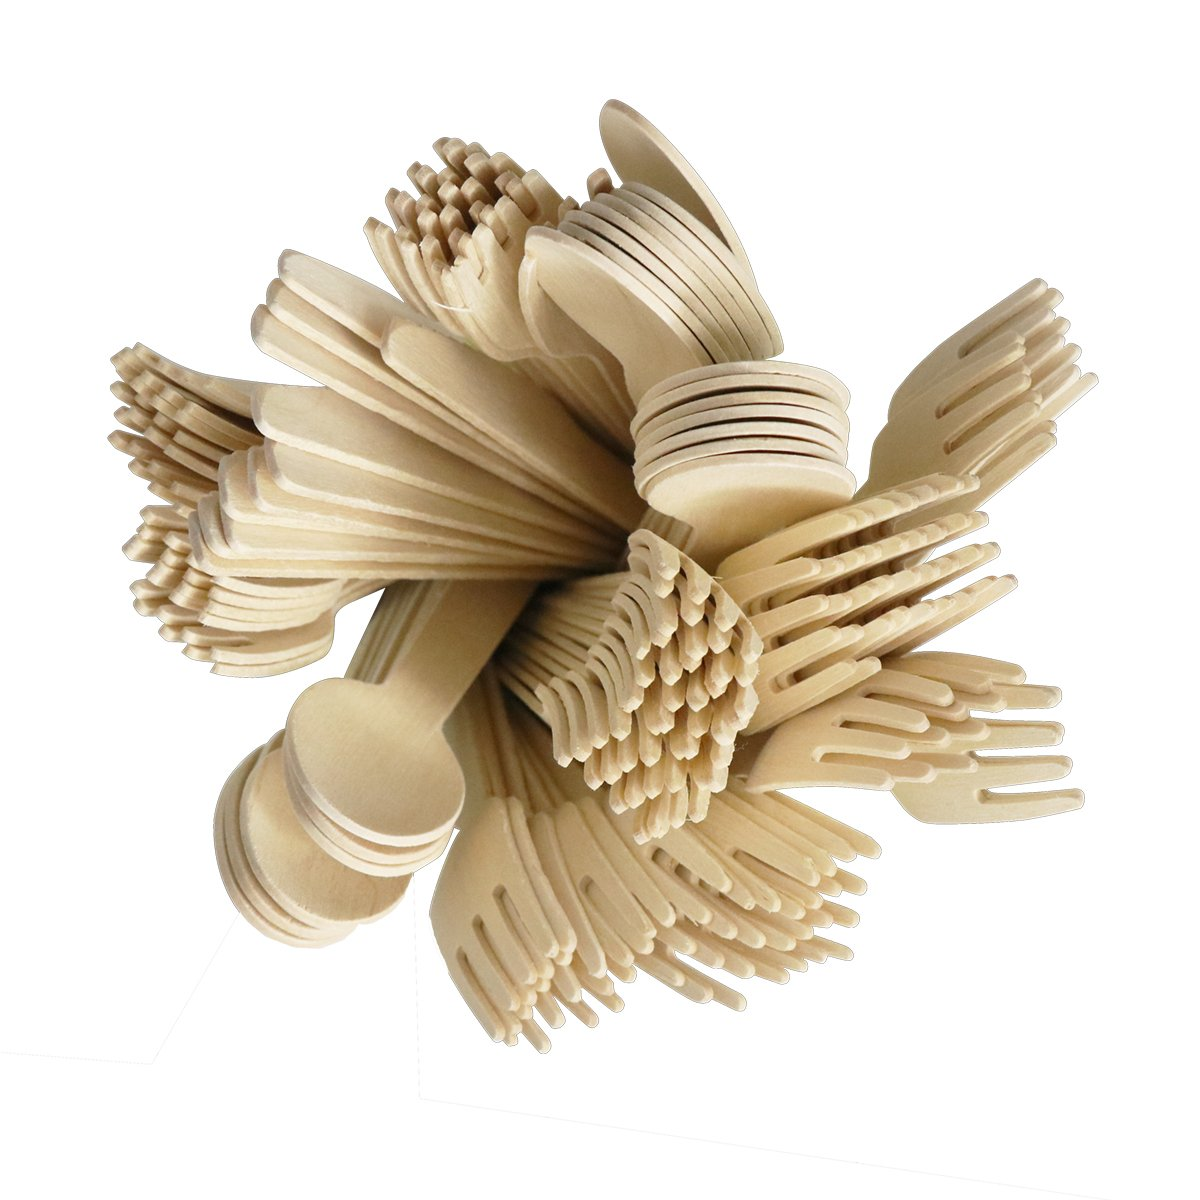 Picnics 100 PCS Disposable Wooden Cutlery Biodegradable Compostable Wooden Utensils for Party Wedding Family Events BBQ